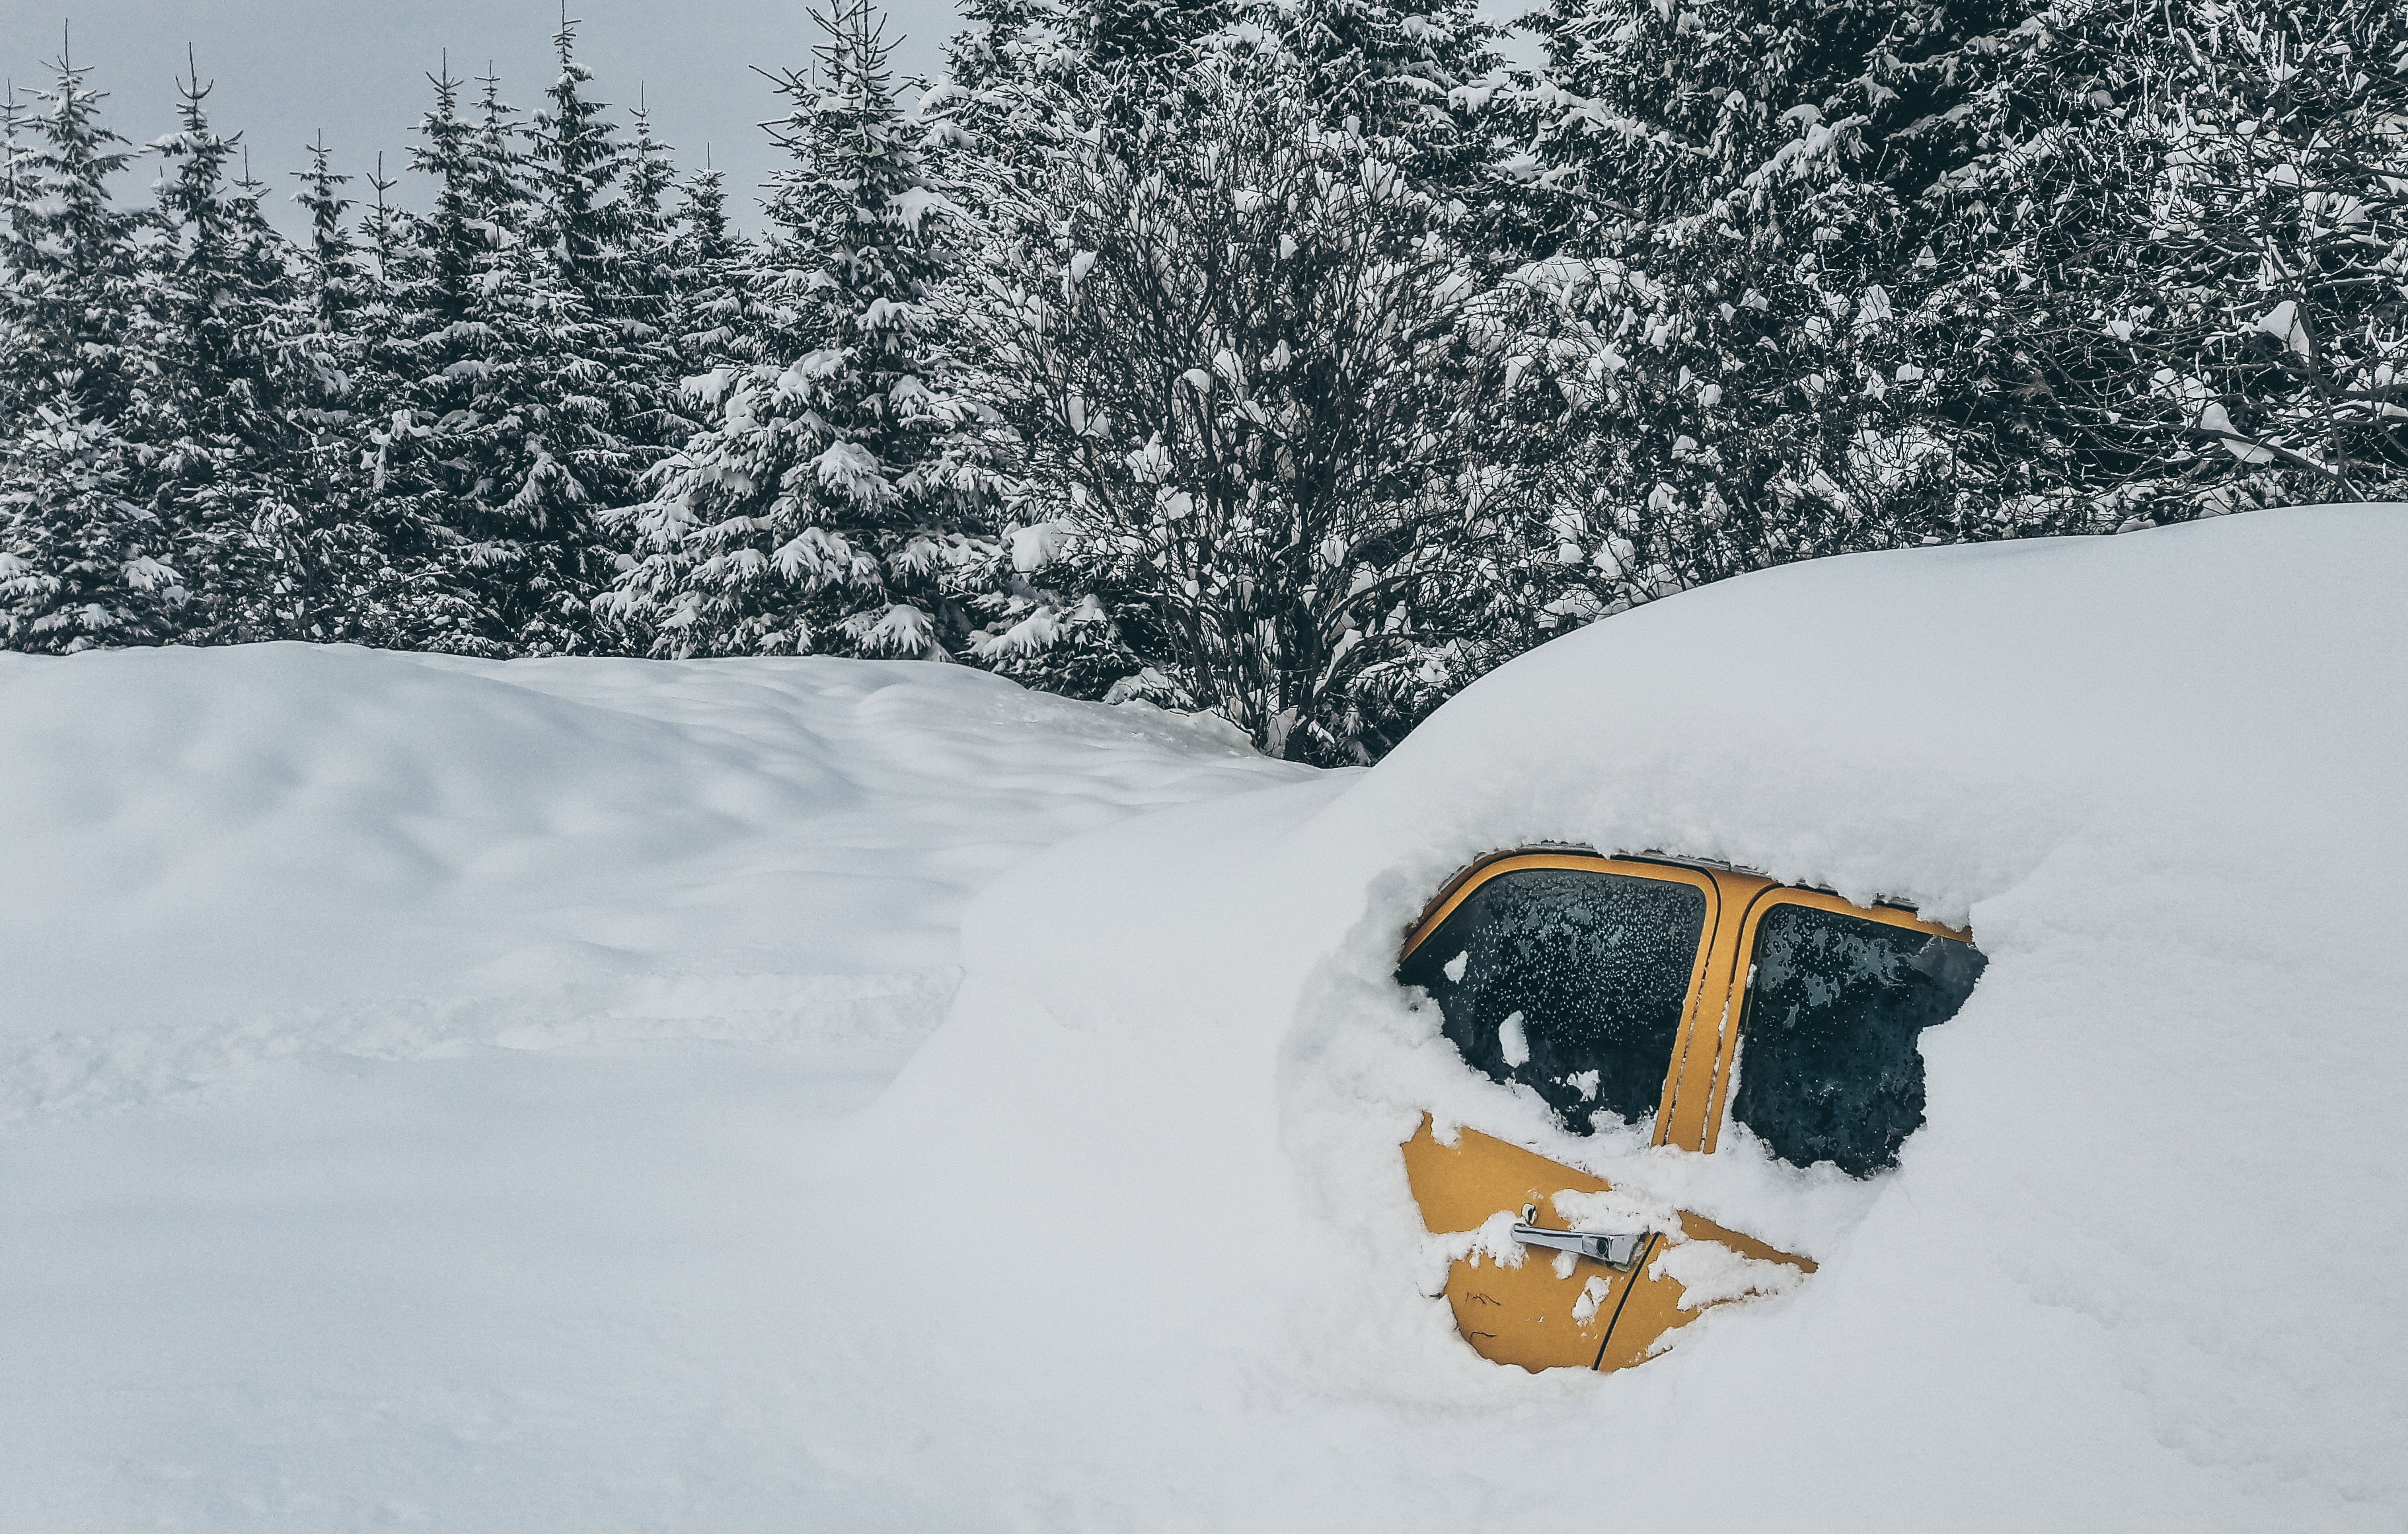 photo of brown vehicle covered with snow near pine tree forest